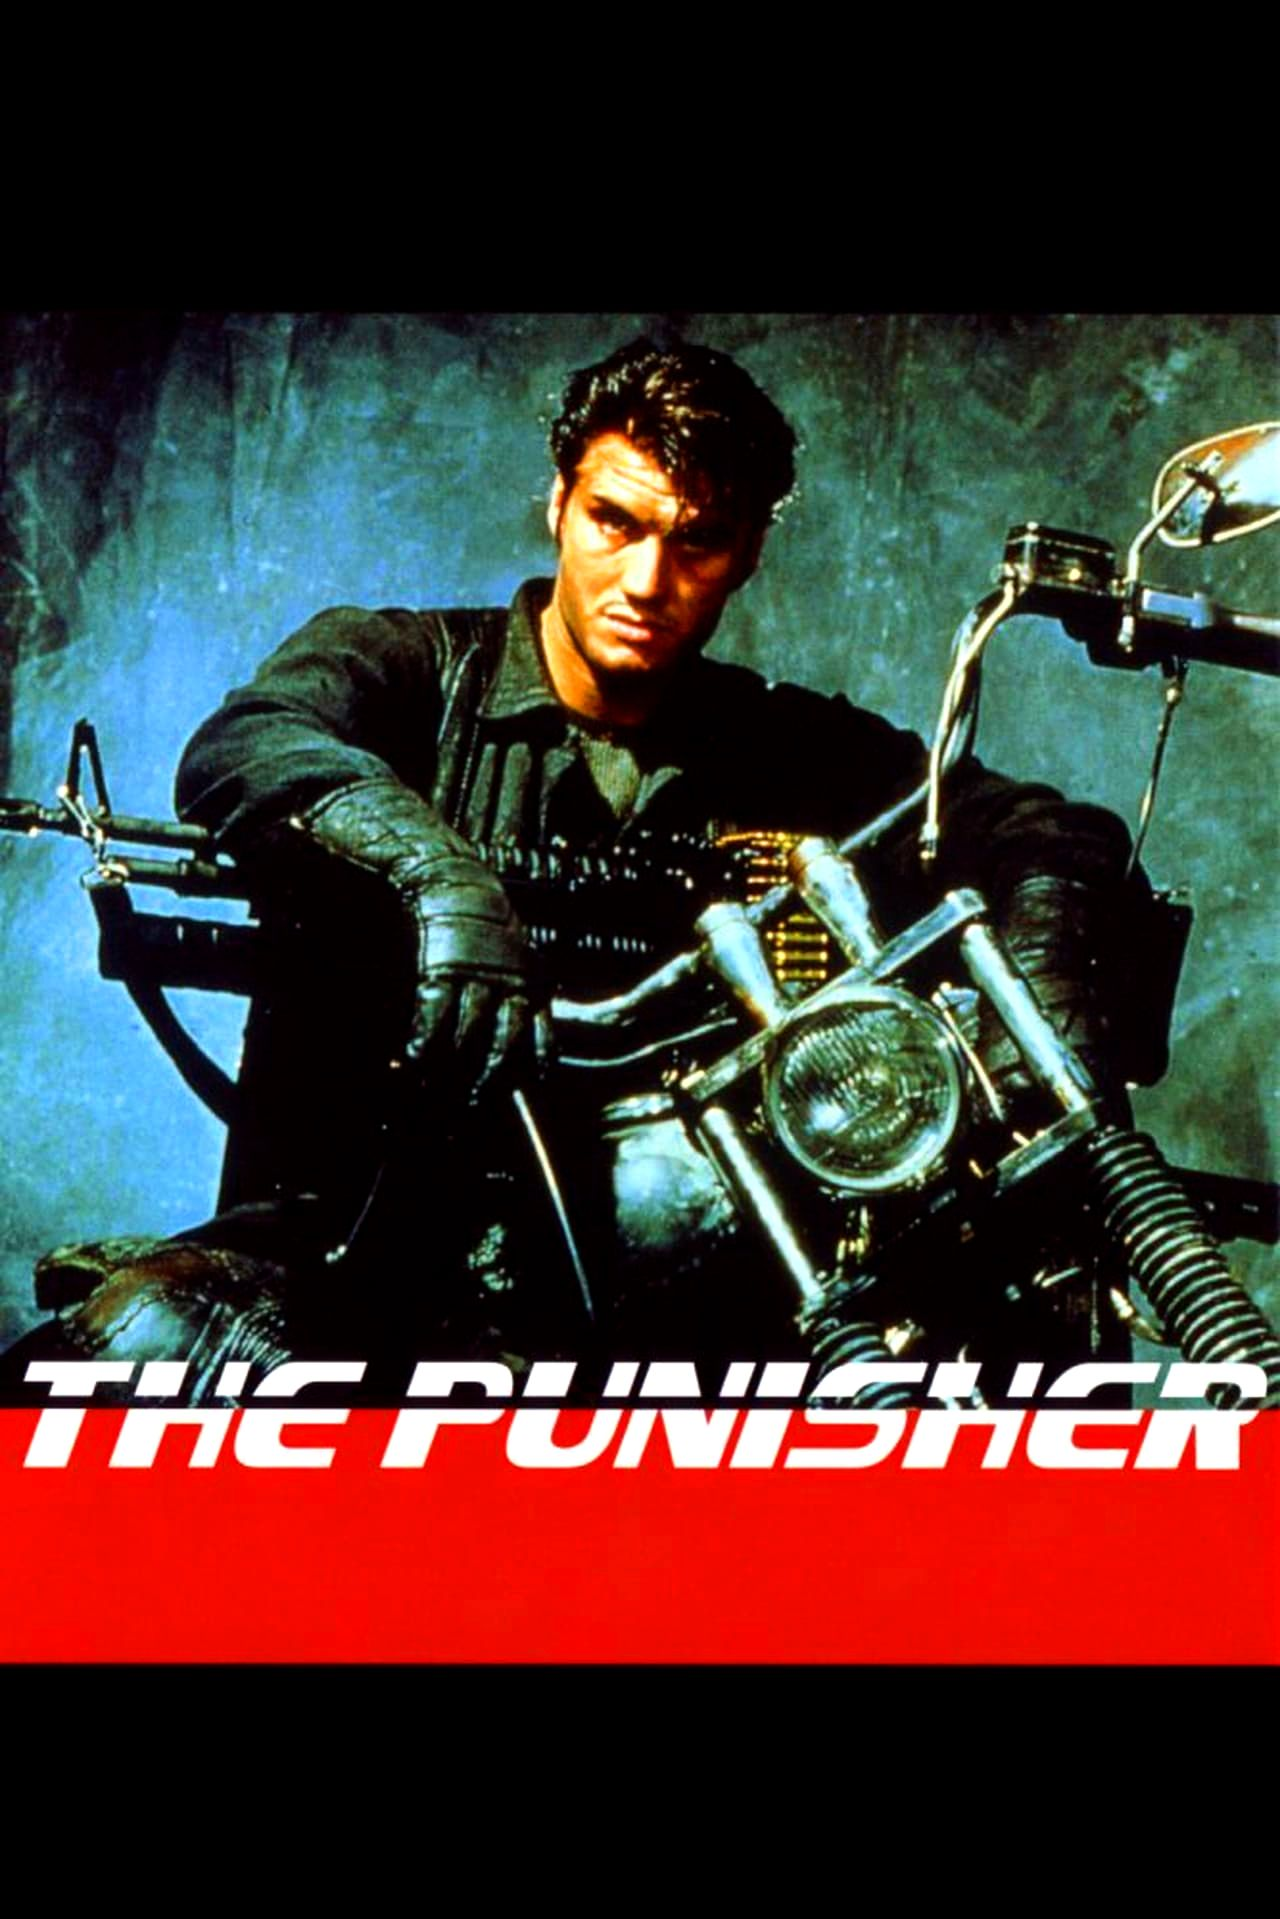 Pin By Kris Felton On Punisher Full Movies Online Free Punisher Beastmaster Movie